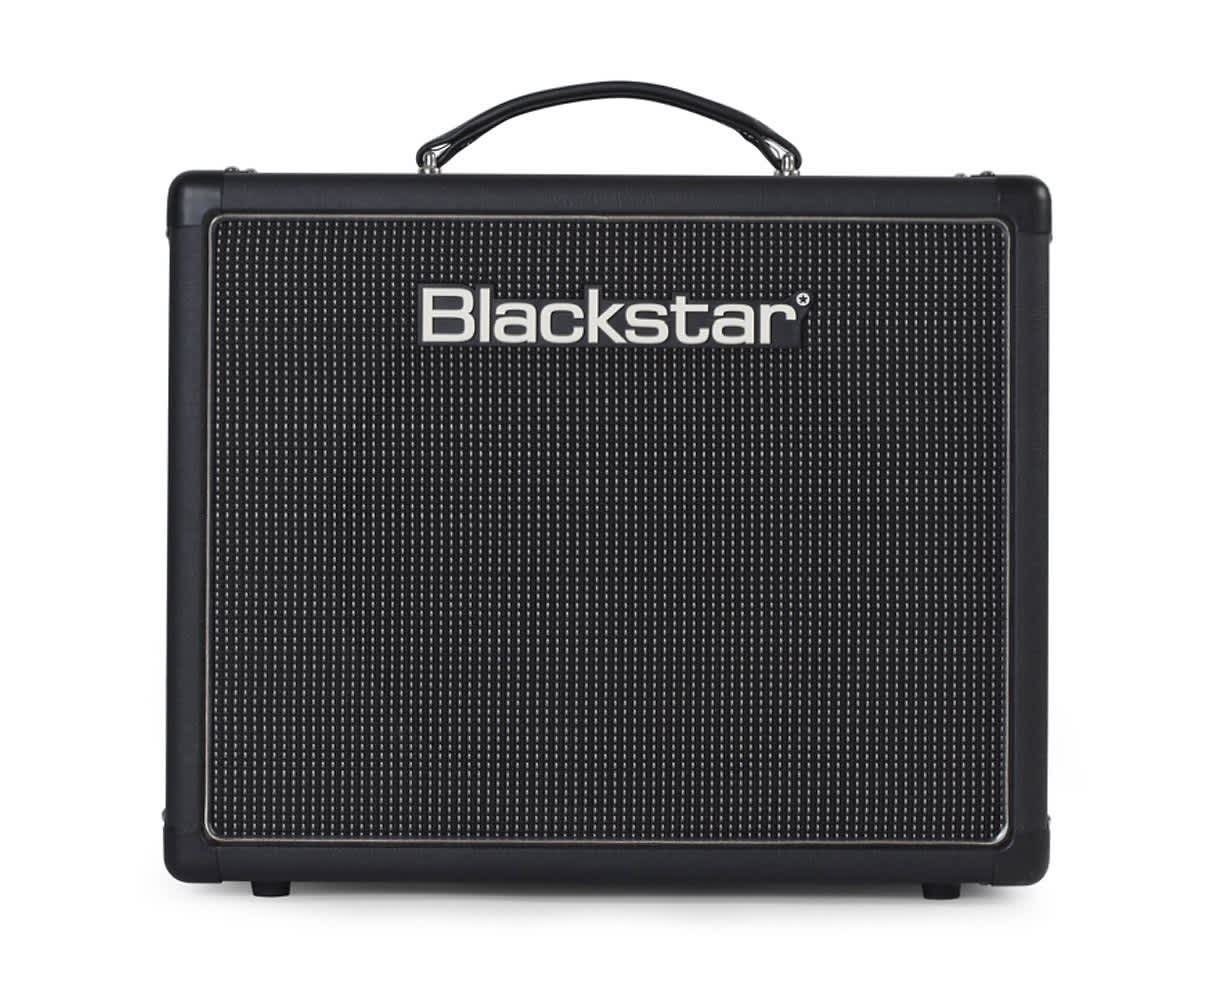 blackstar ht 5r 5 watt combo amp with reverb footswitch reverb. Black Bedroom Furniture Sets. Home Design Ideas